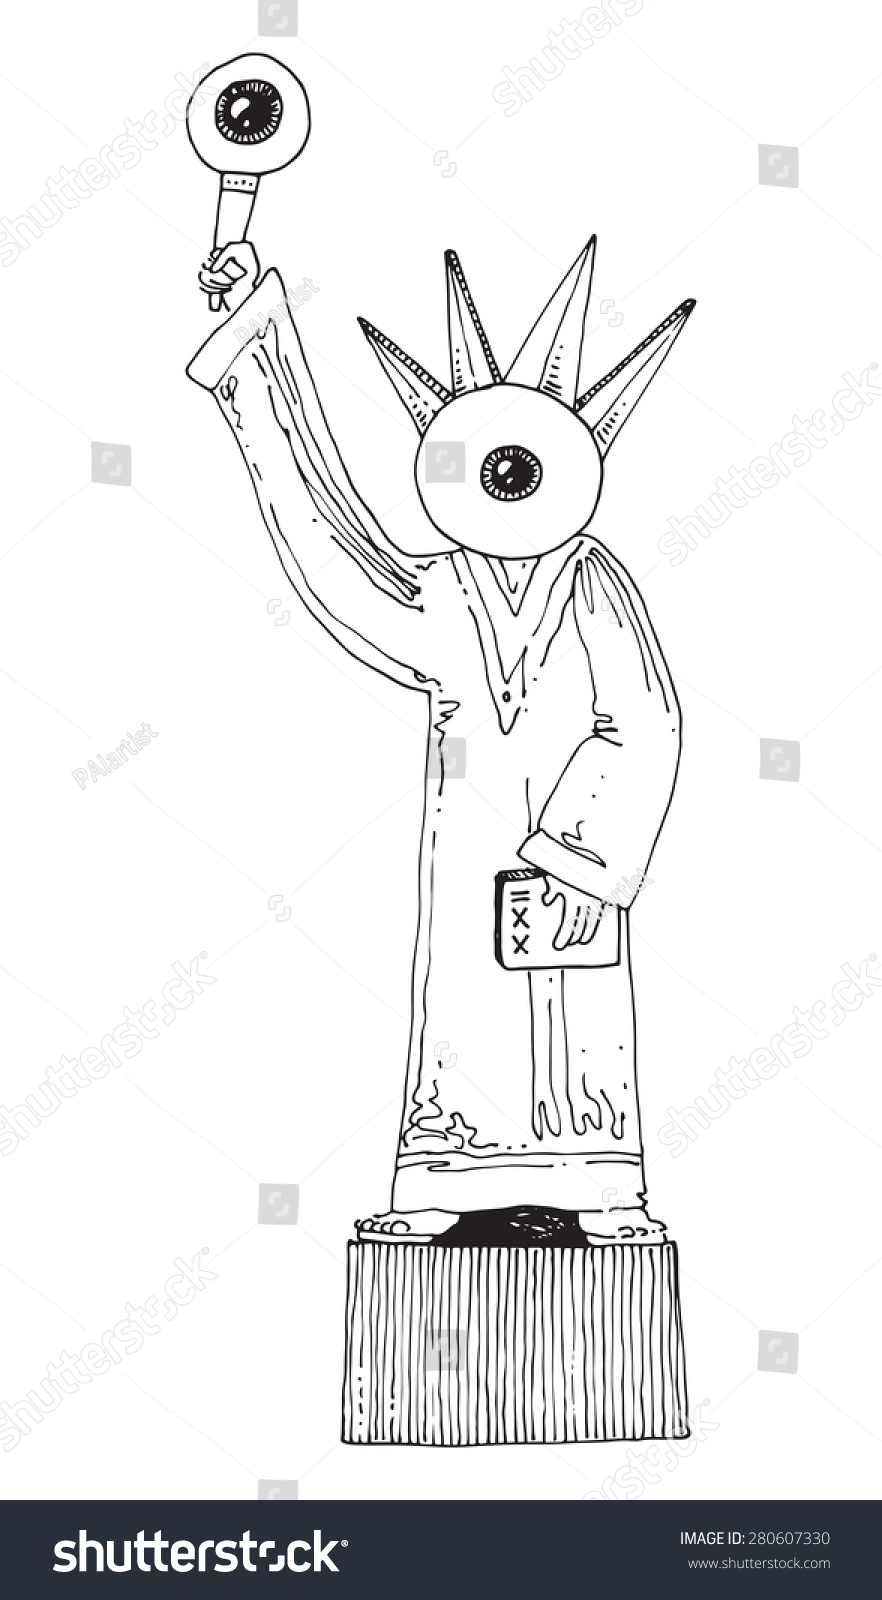 illustration statue of liberty caricature big eye head and eye flame torch crown simple drawing